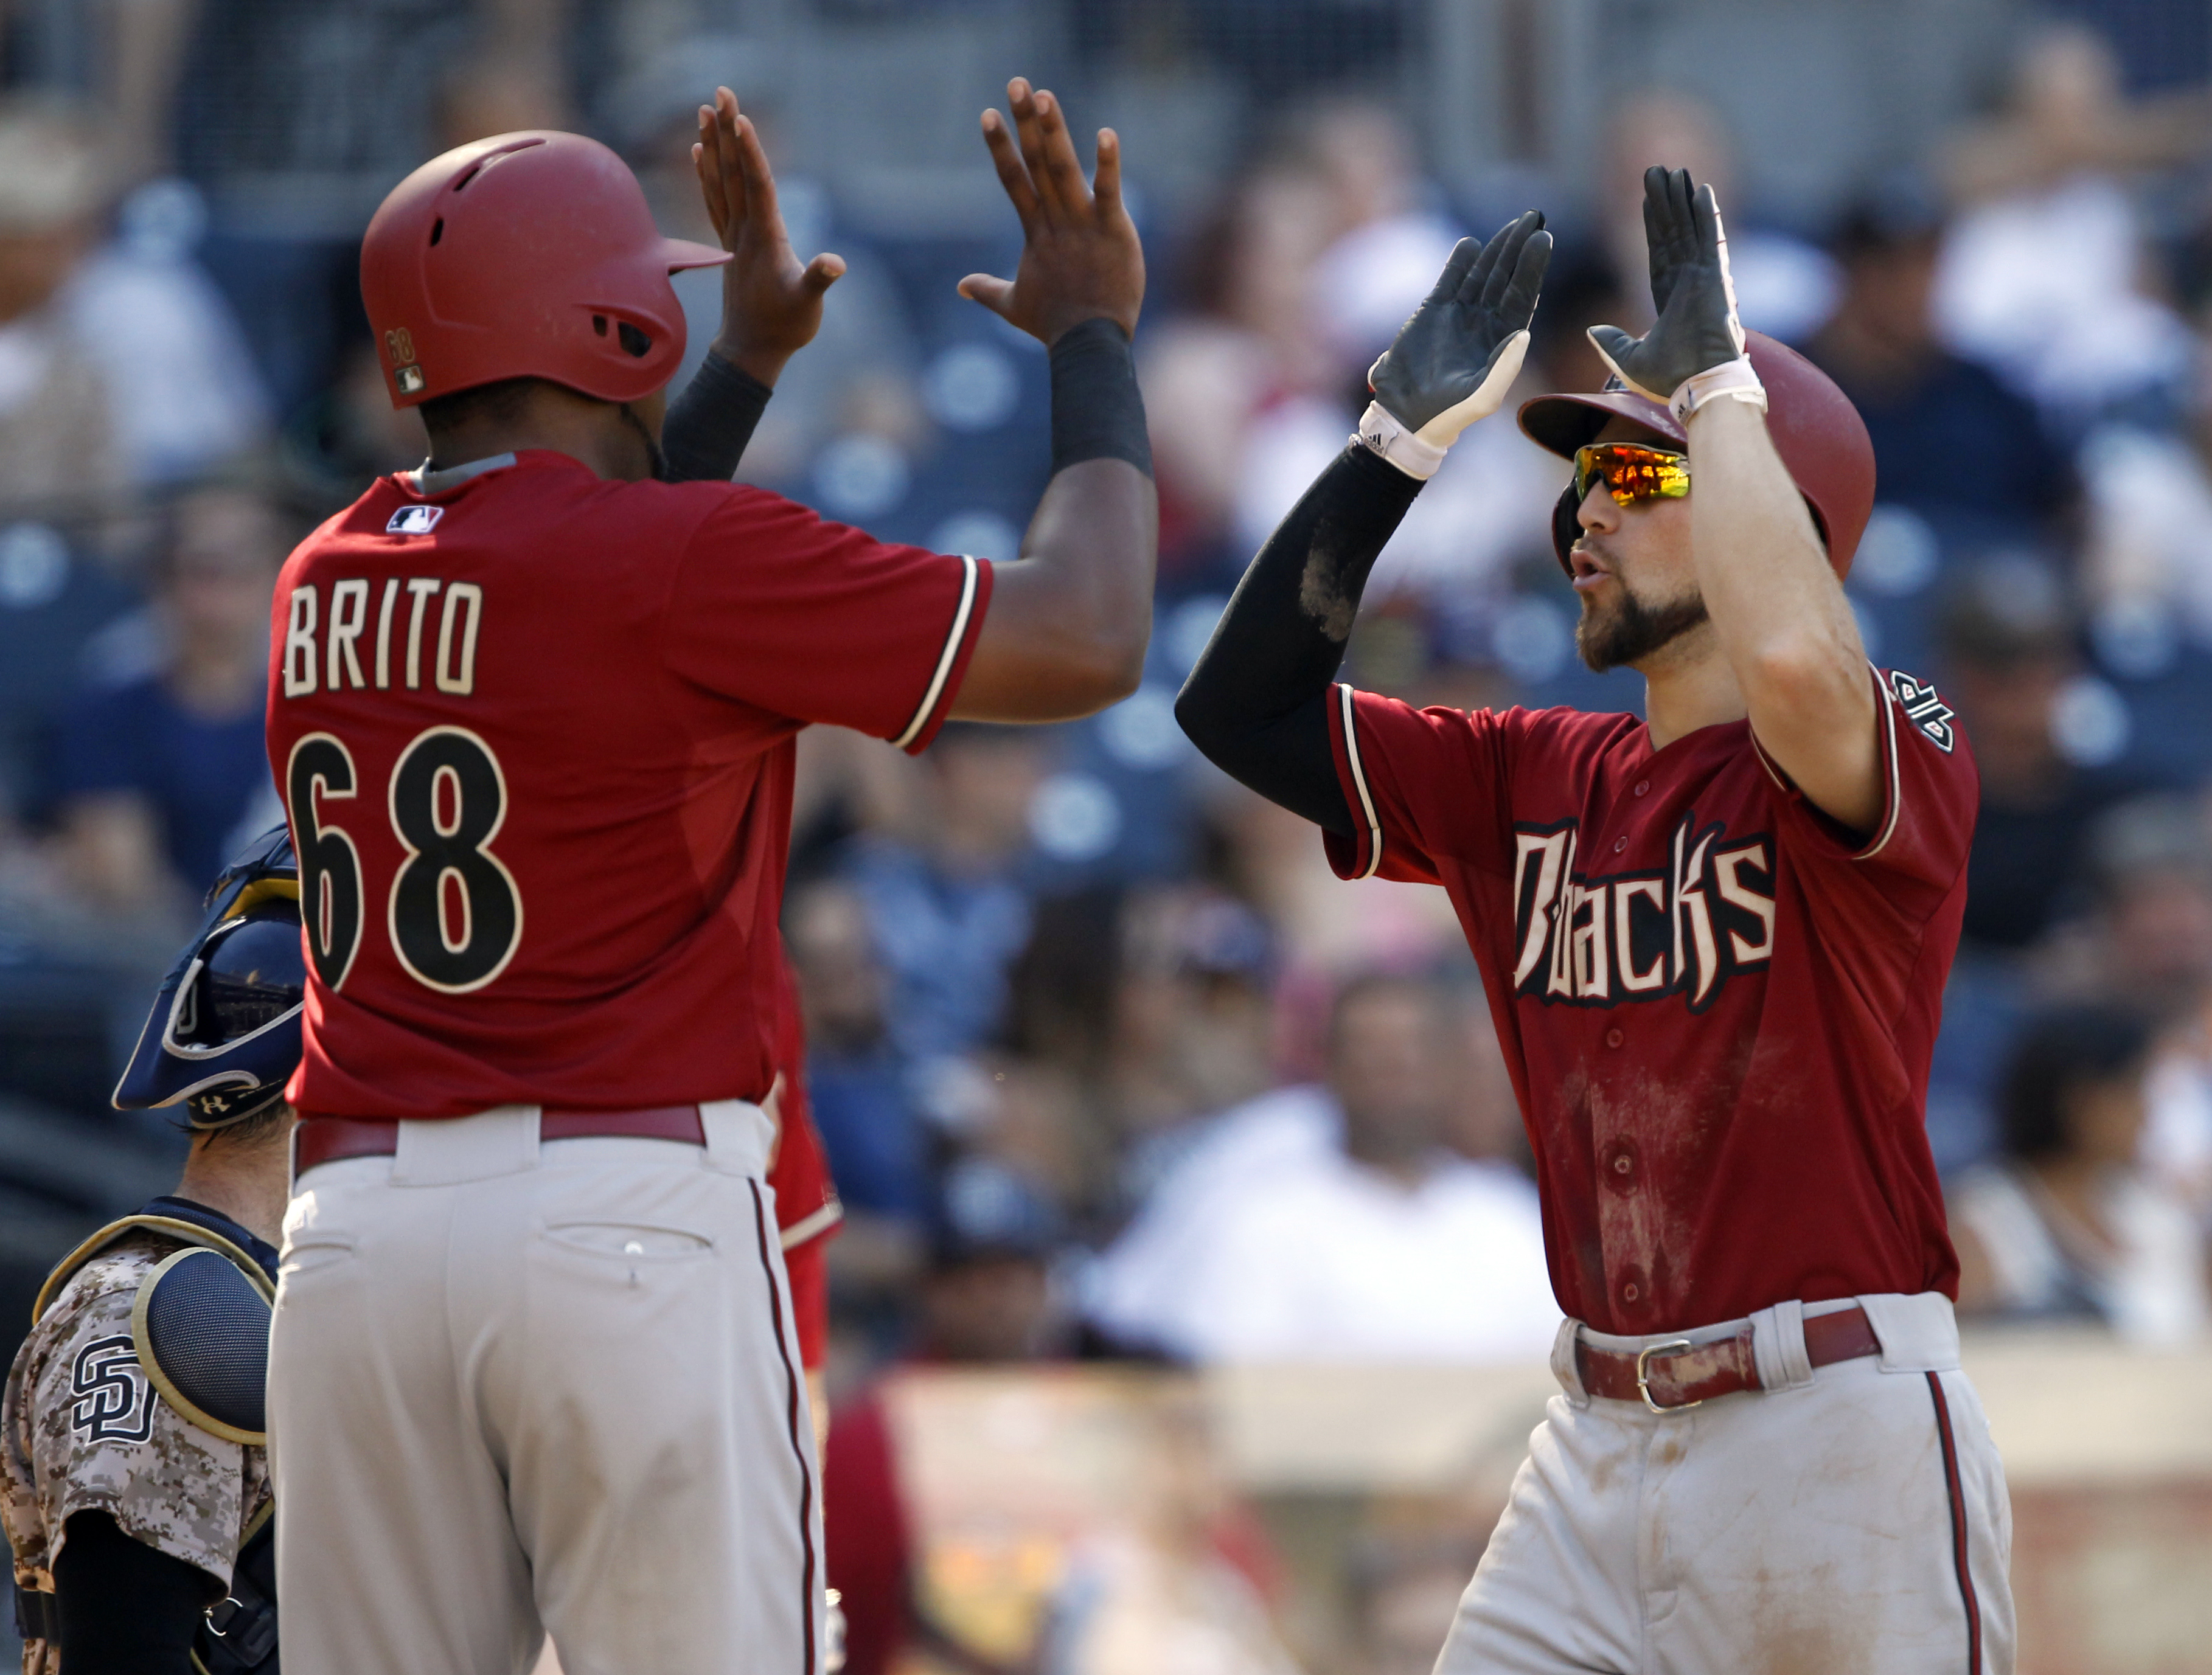 Arizona Diamondbacks' Socrates Brito, left, congratulates Ender Inciarte, right, for hitting a two-run home run against the San Diego Padres during the seventh inning of a baseball game in San Diego, Sunday, Sept. 27, 2015. (AP Photo/Alex Gallardo)